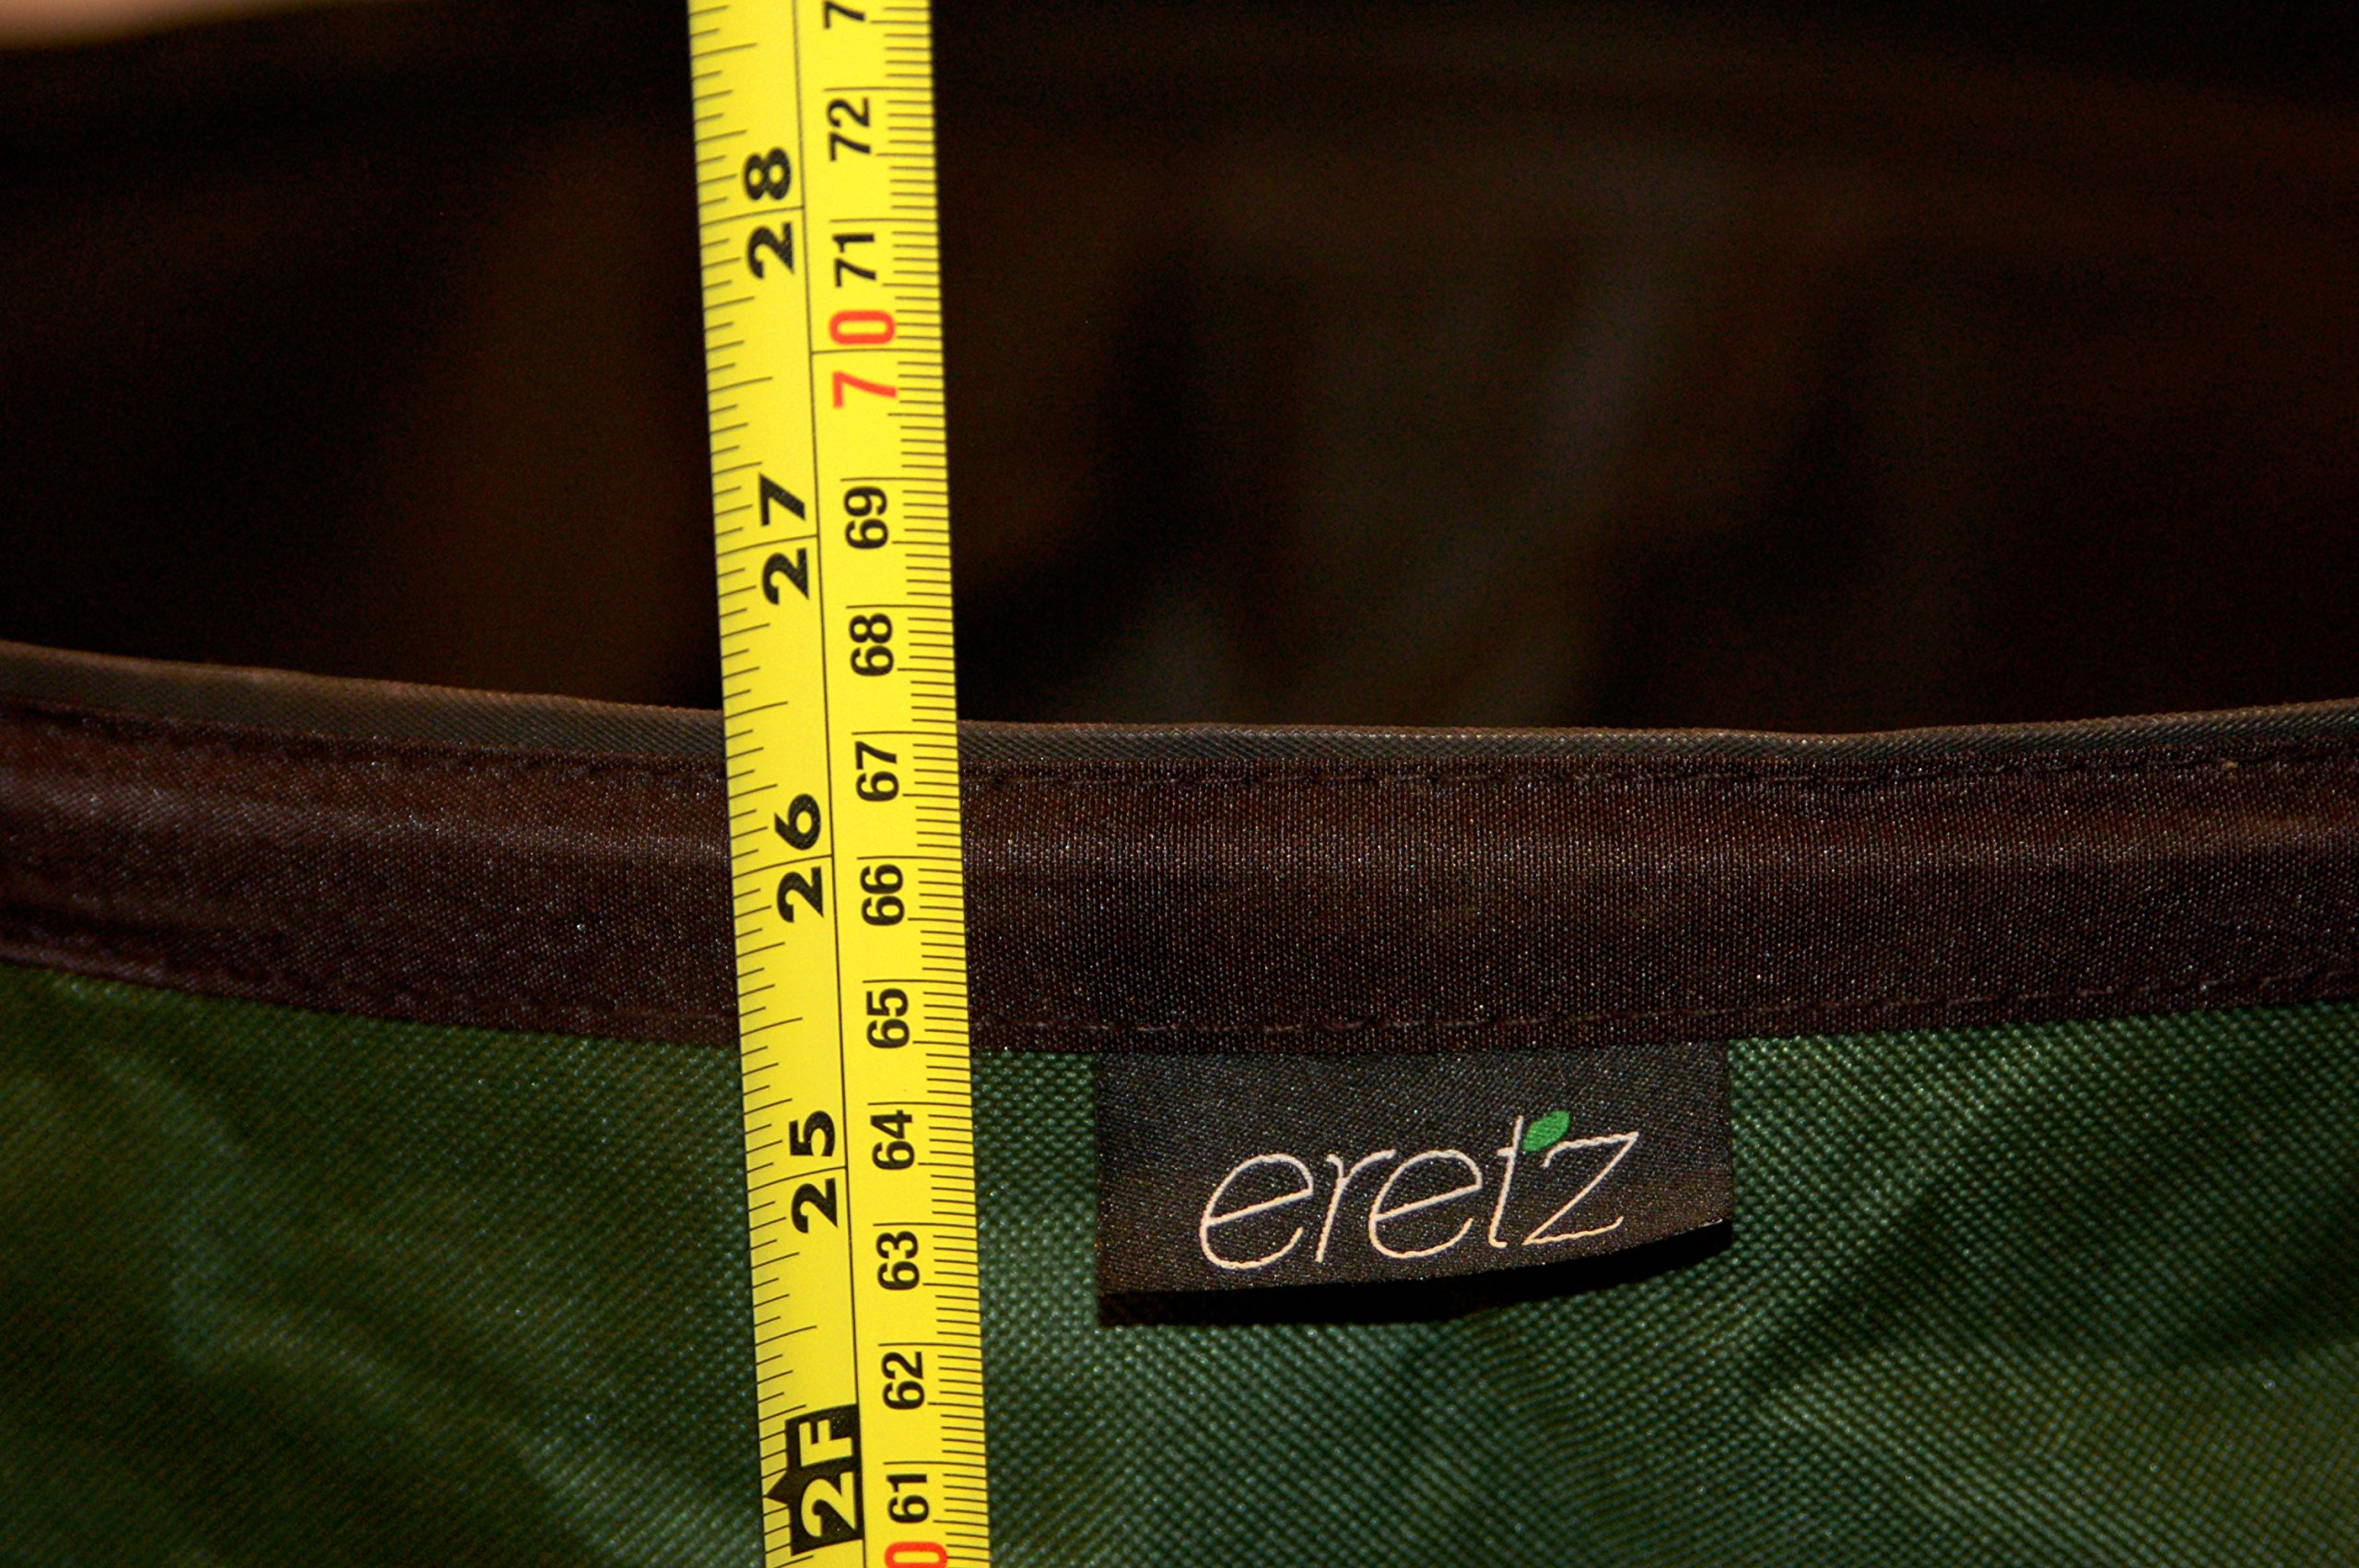 (35 Gallon) Heavy Duty Pop-Up Collapsible Yard & Garden Bag by Eretz (Image #6)